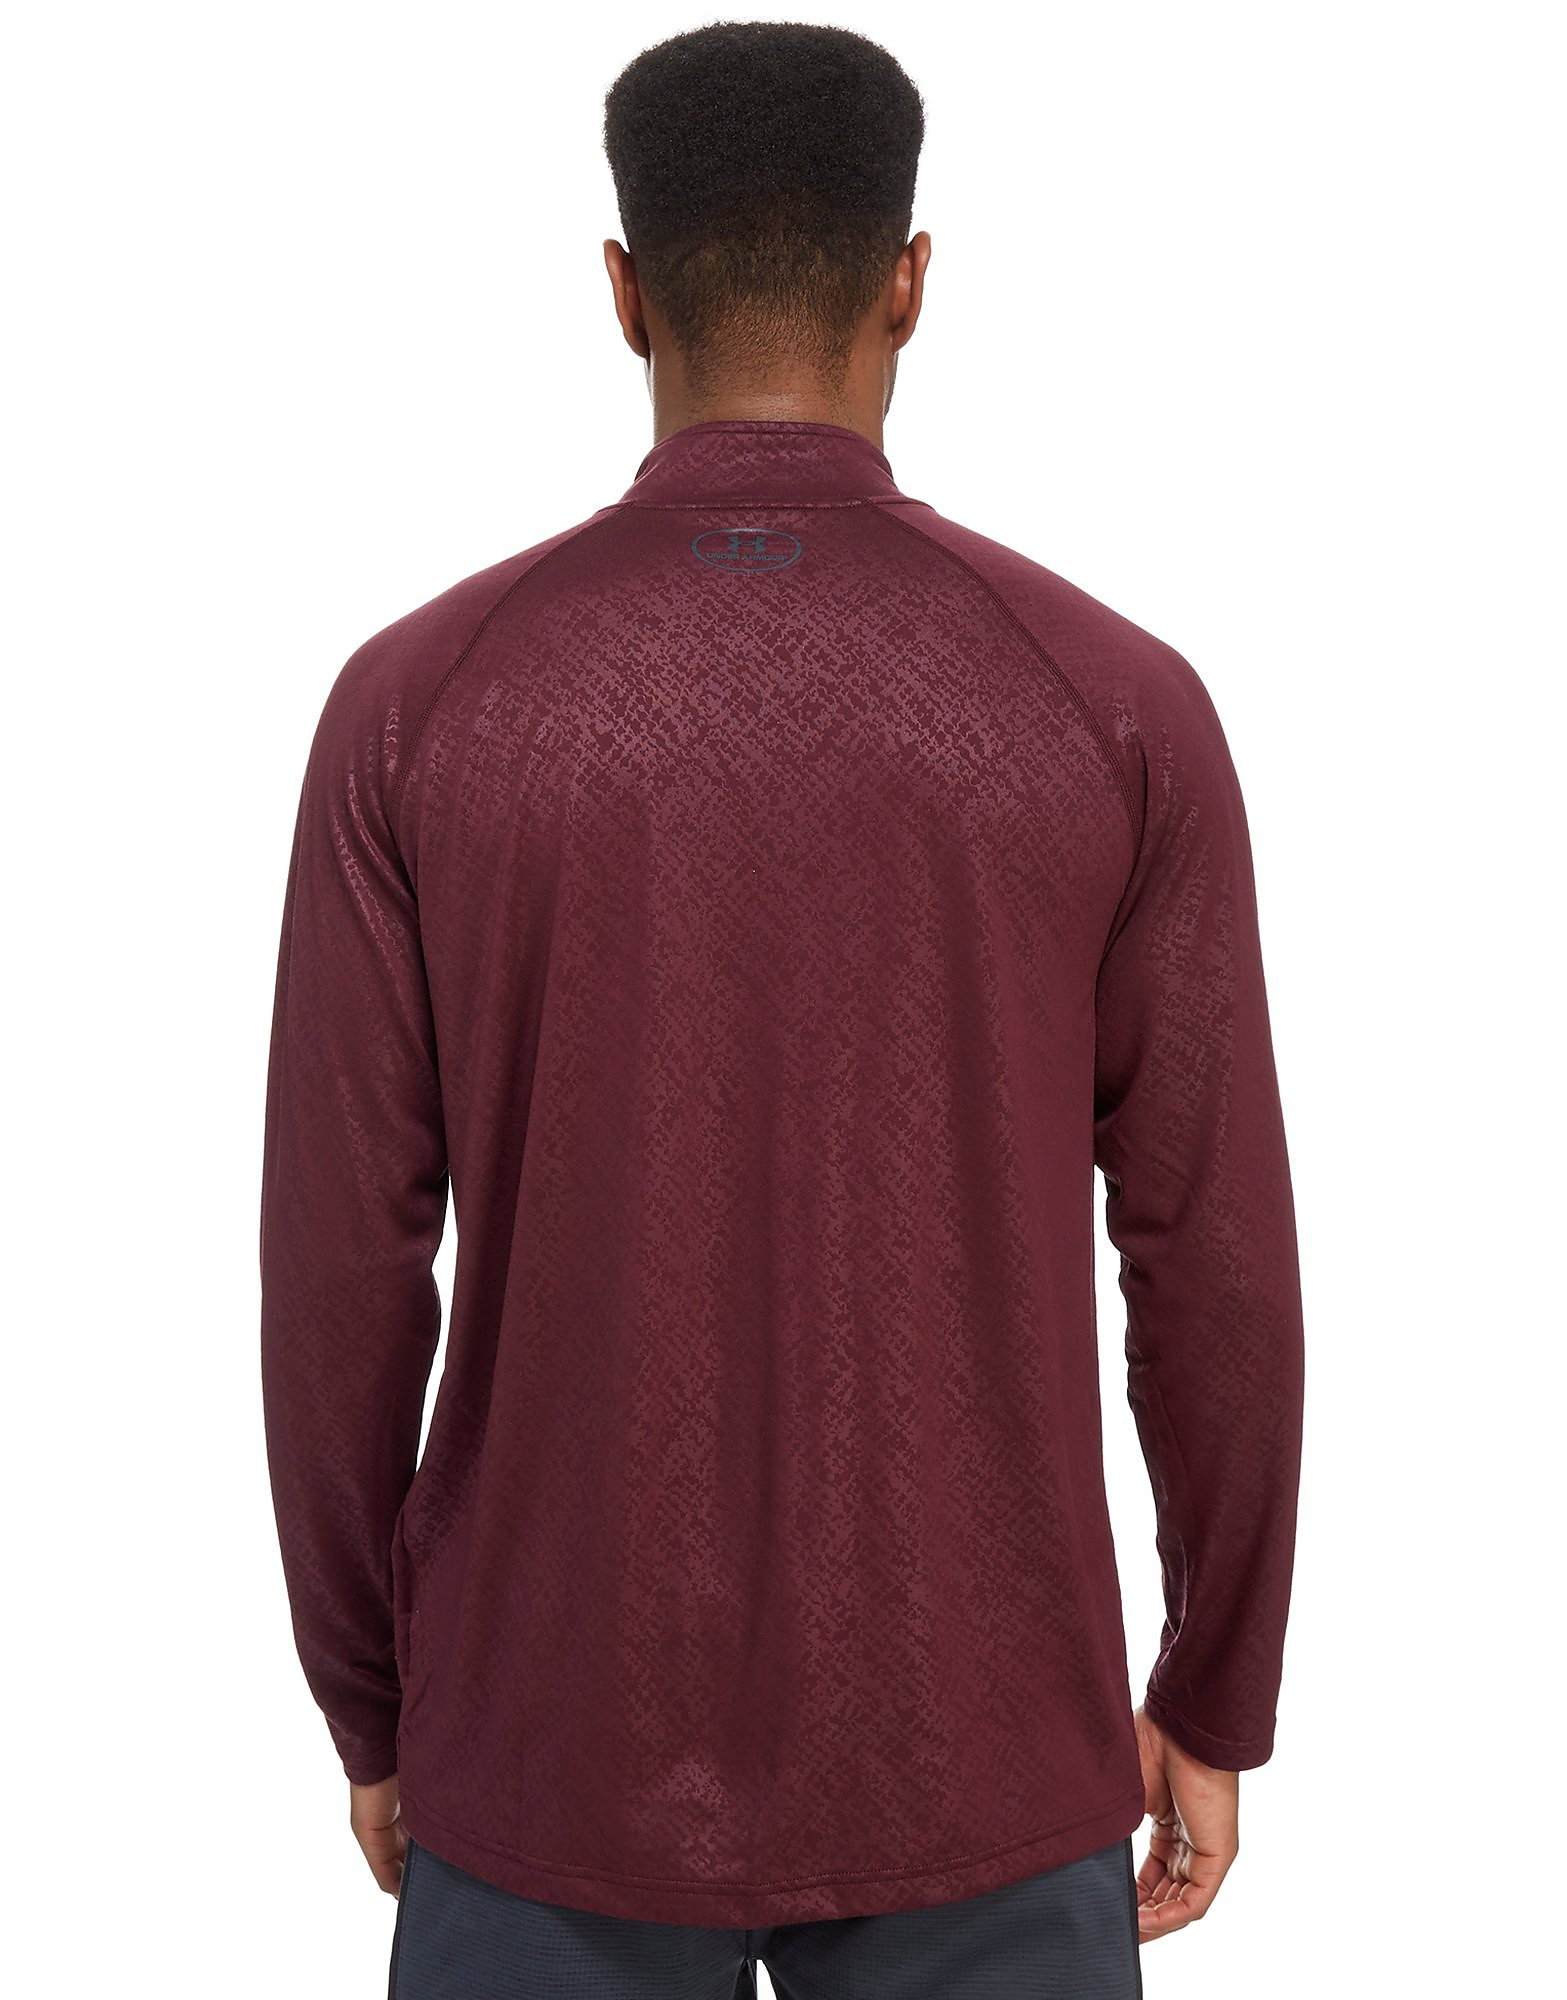 Under Armour Tech Embossed 1/4 Zip Top